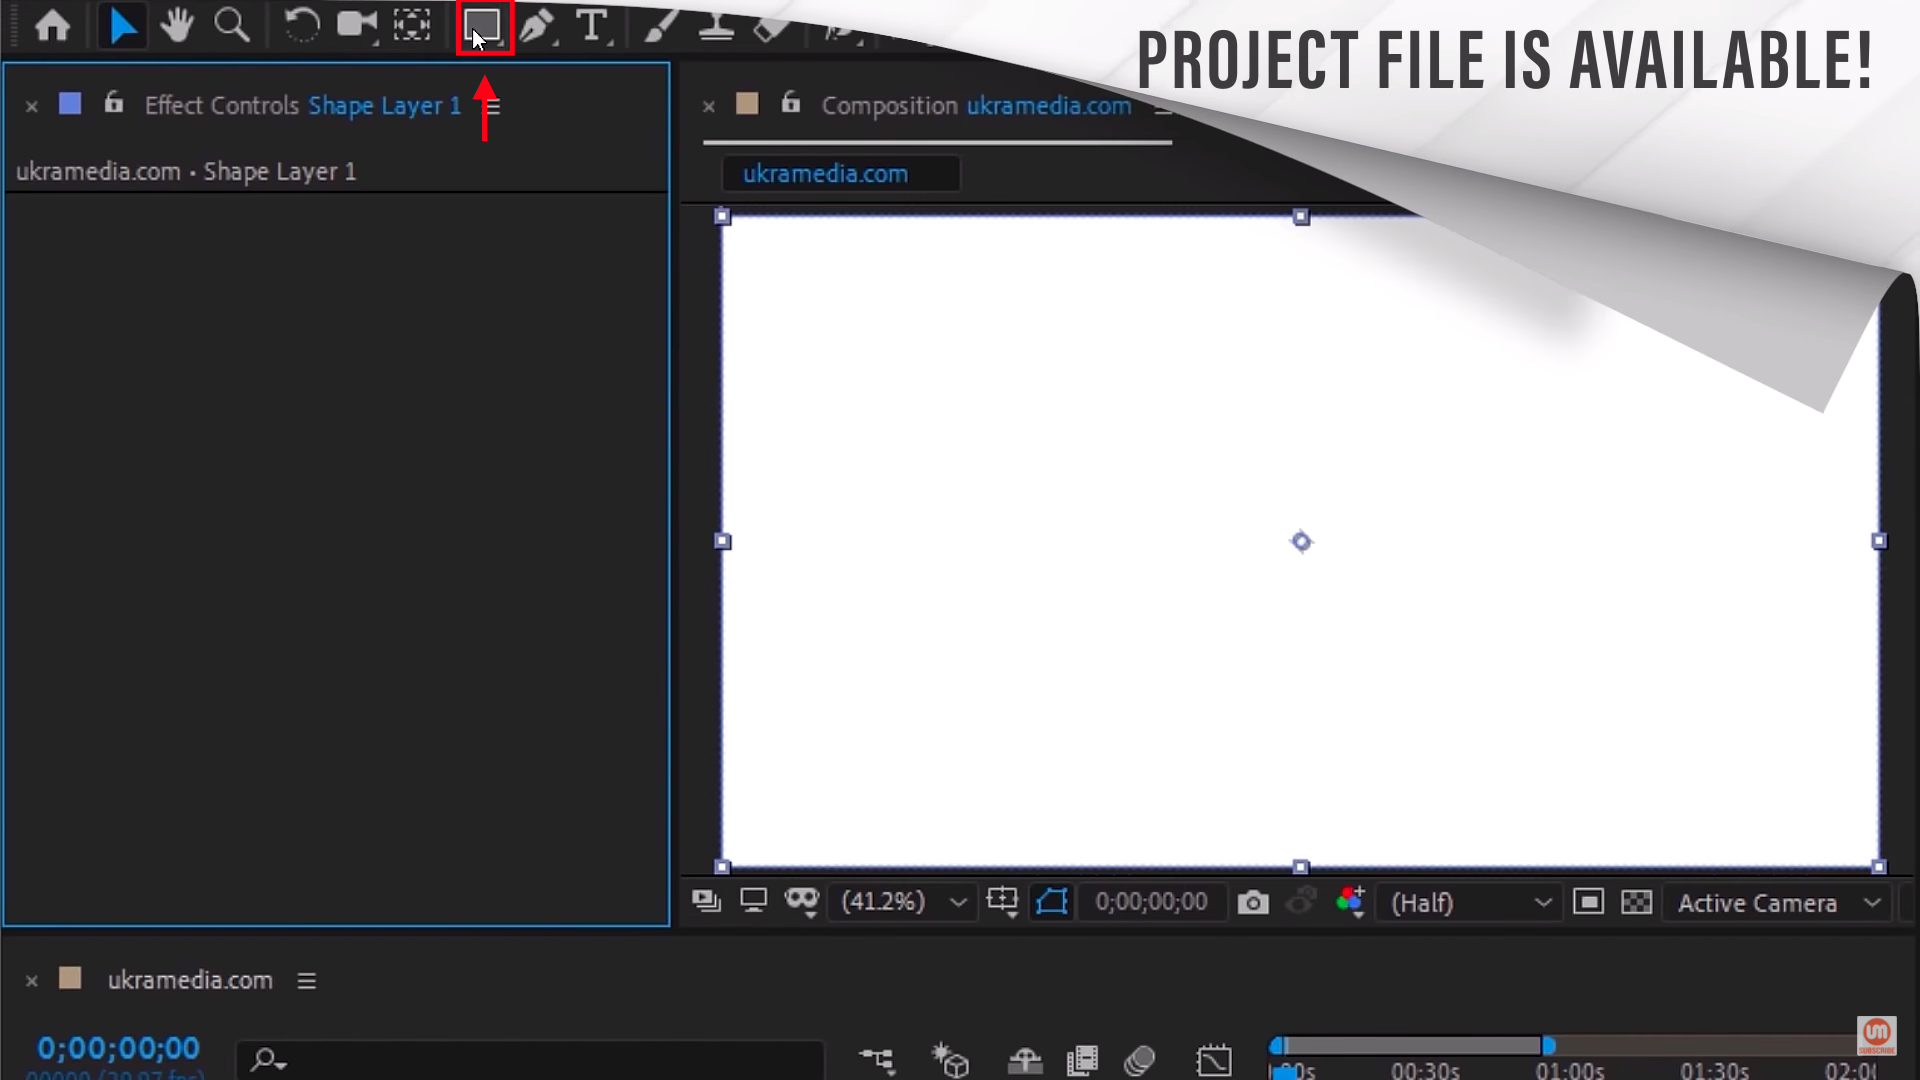 Double Click on the rectangle tool to create a shape layer in After Effects